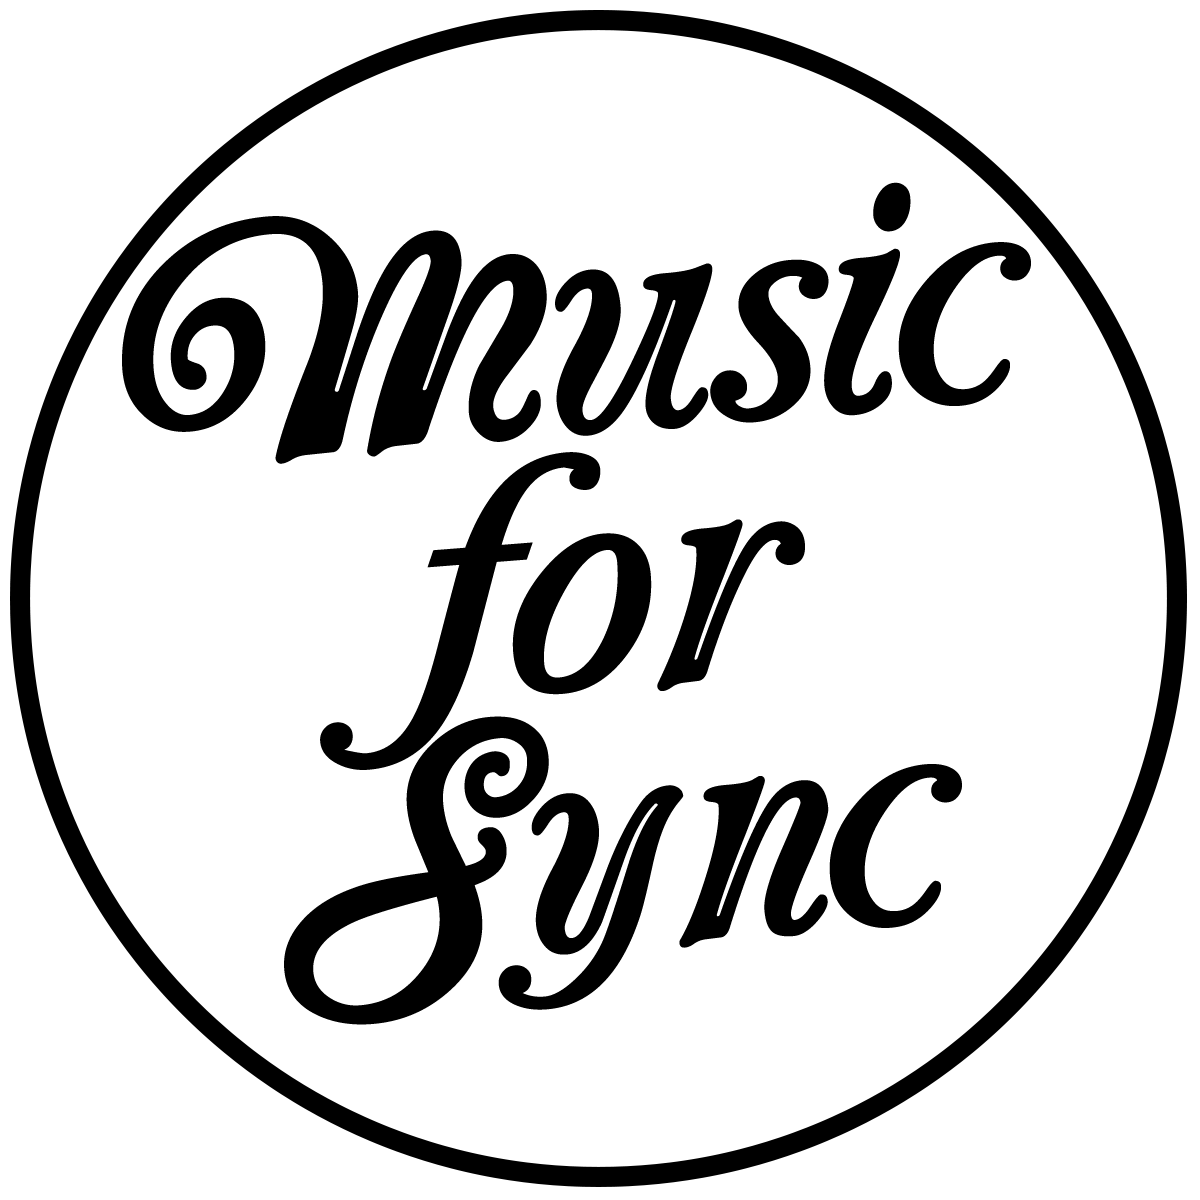 Mixtape drawing indie music. For sync think about